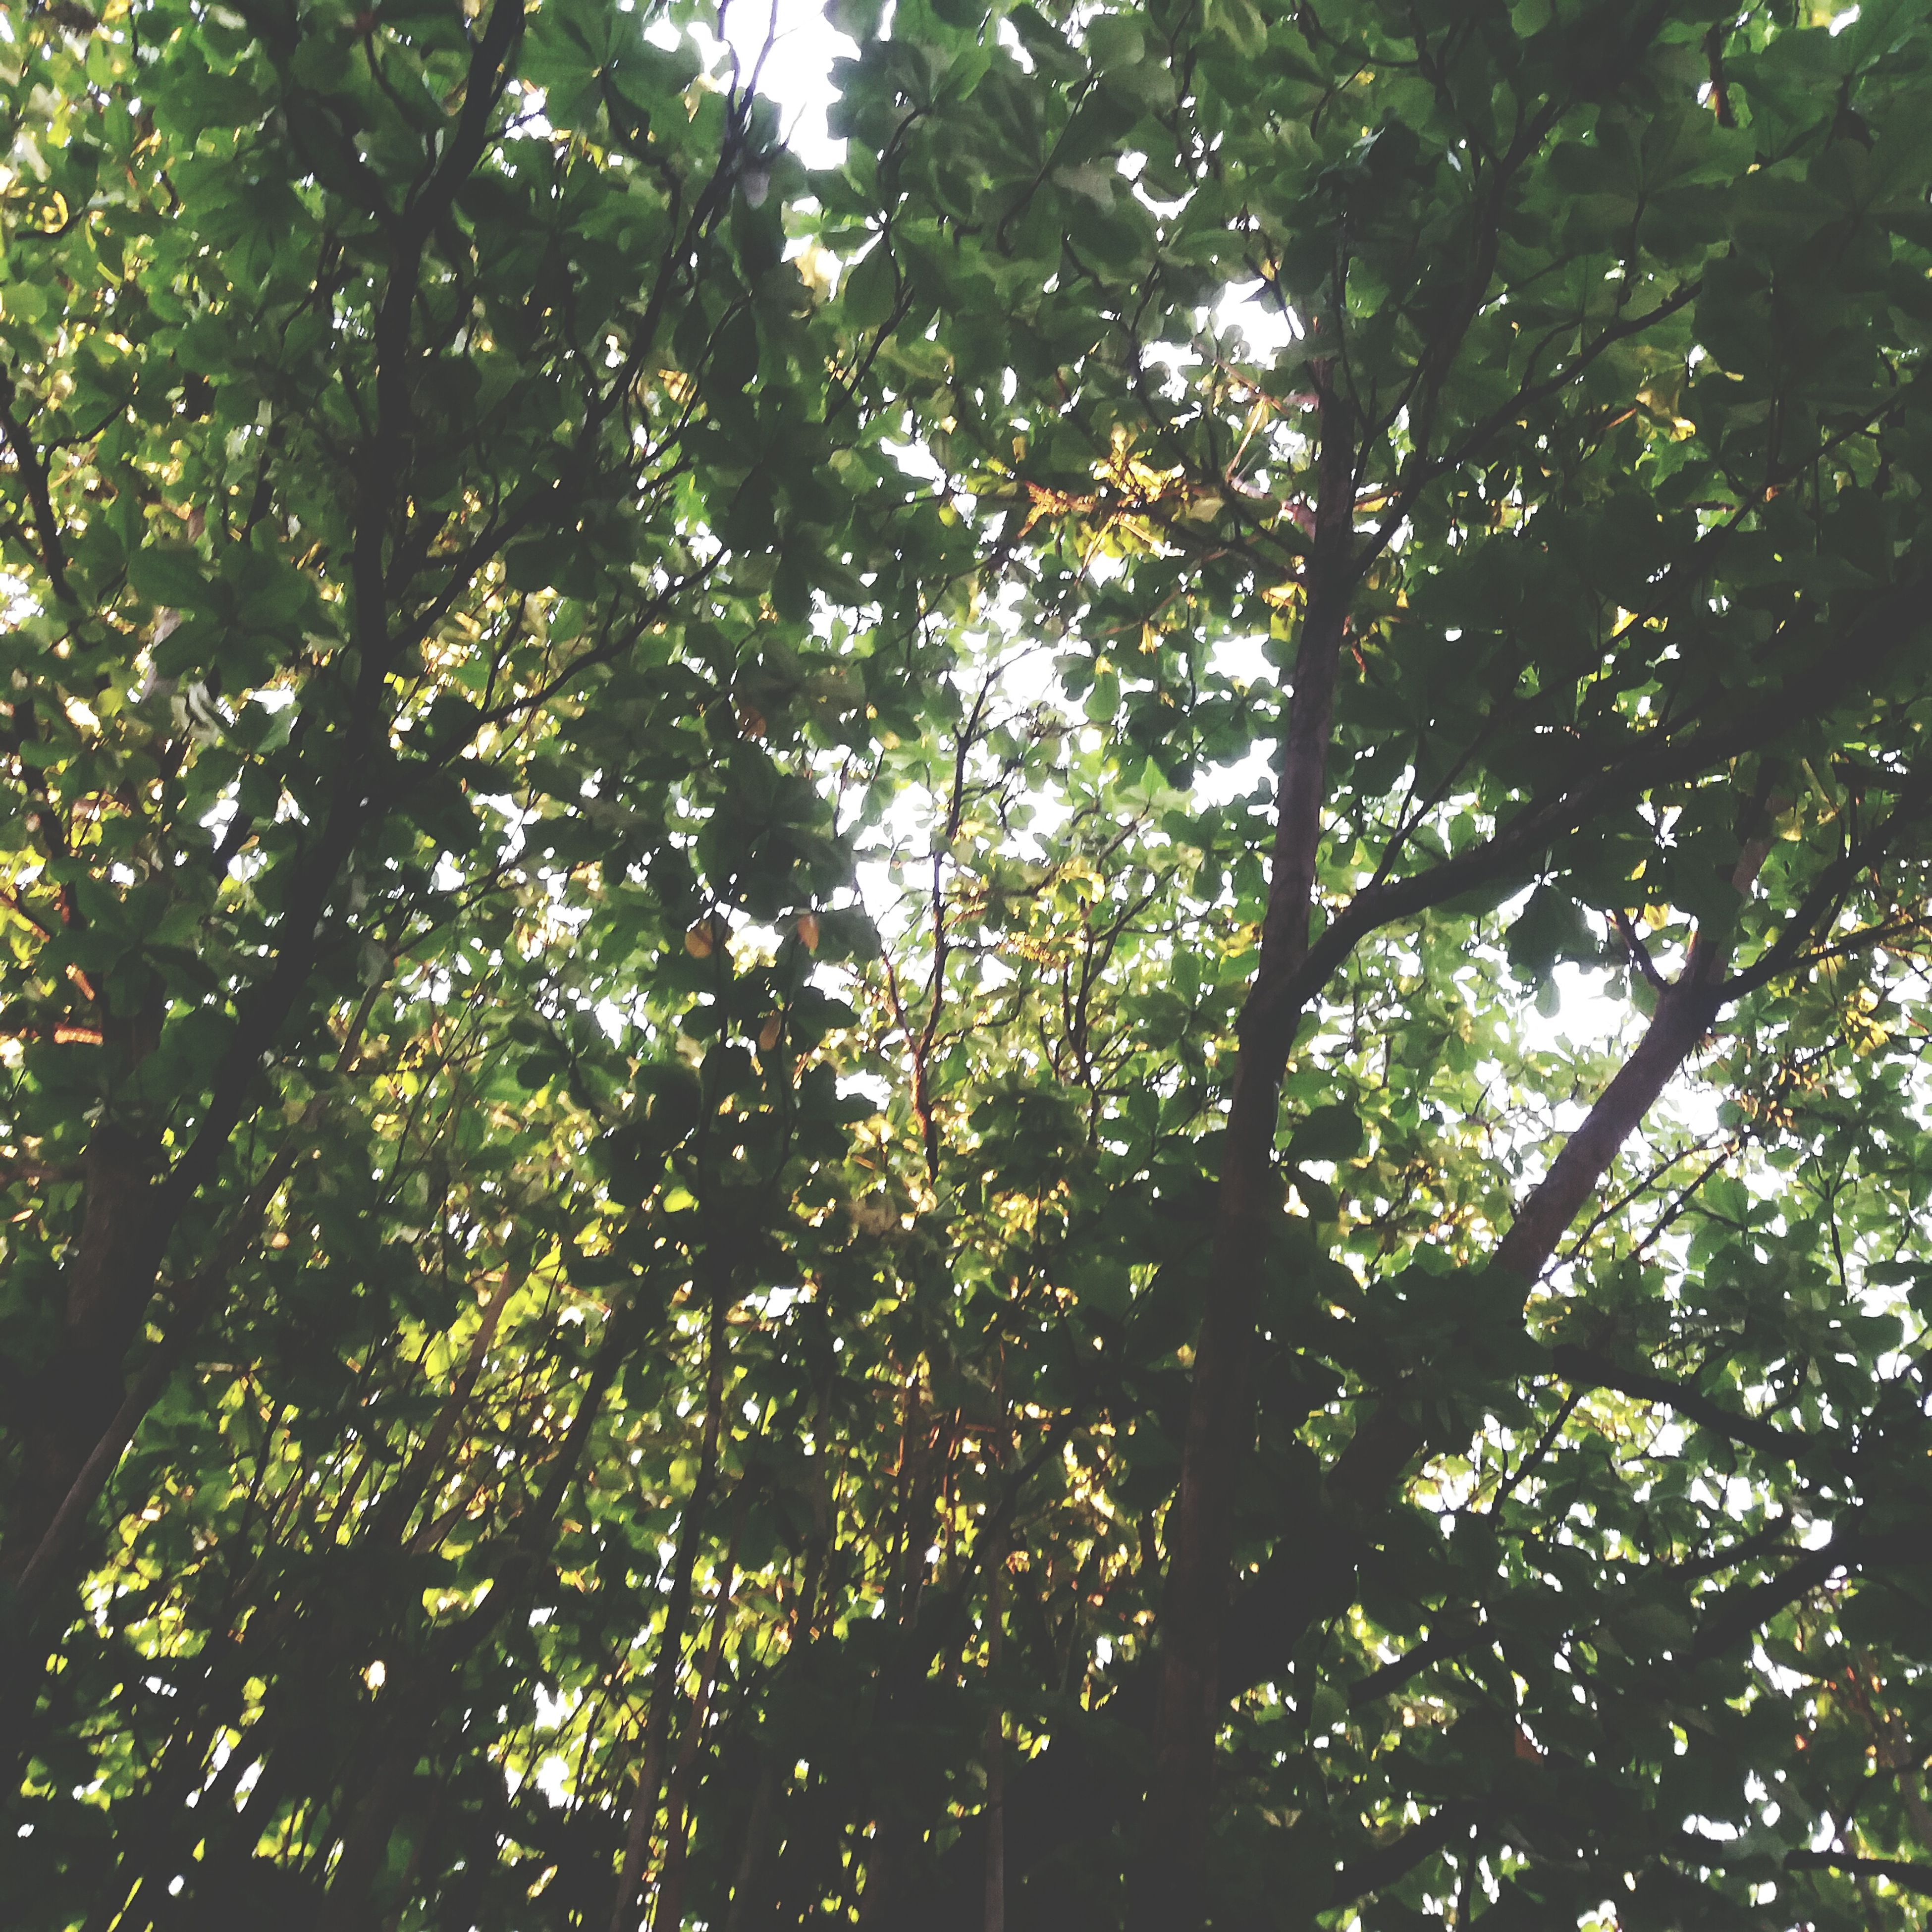 tree, nature, growth, low angle view, backgrounds, beauty in nature, no people, green color, outdoors, tranquility, day, branch, sky, freshness